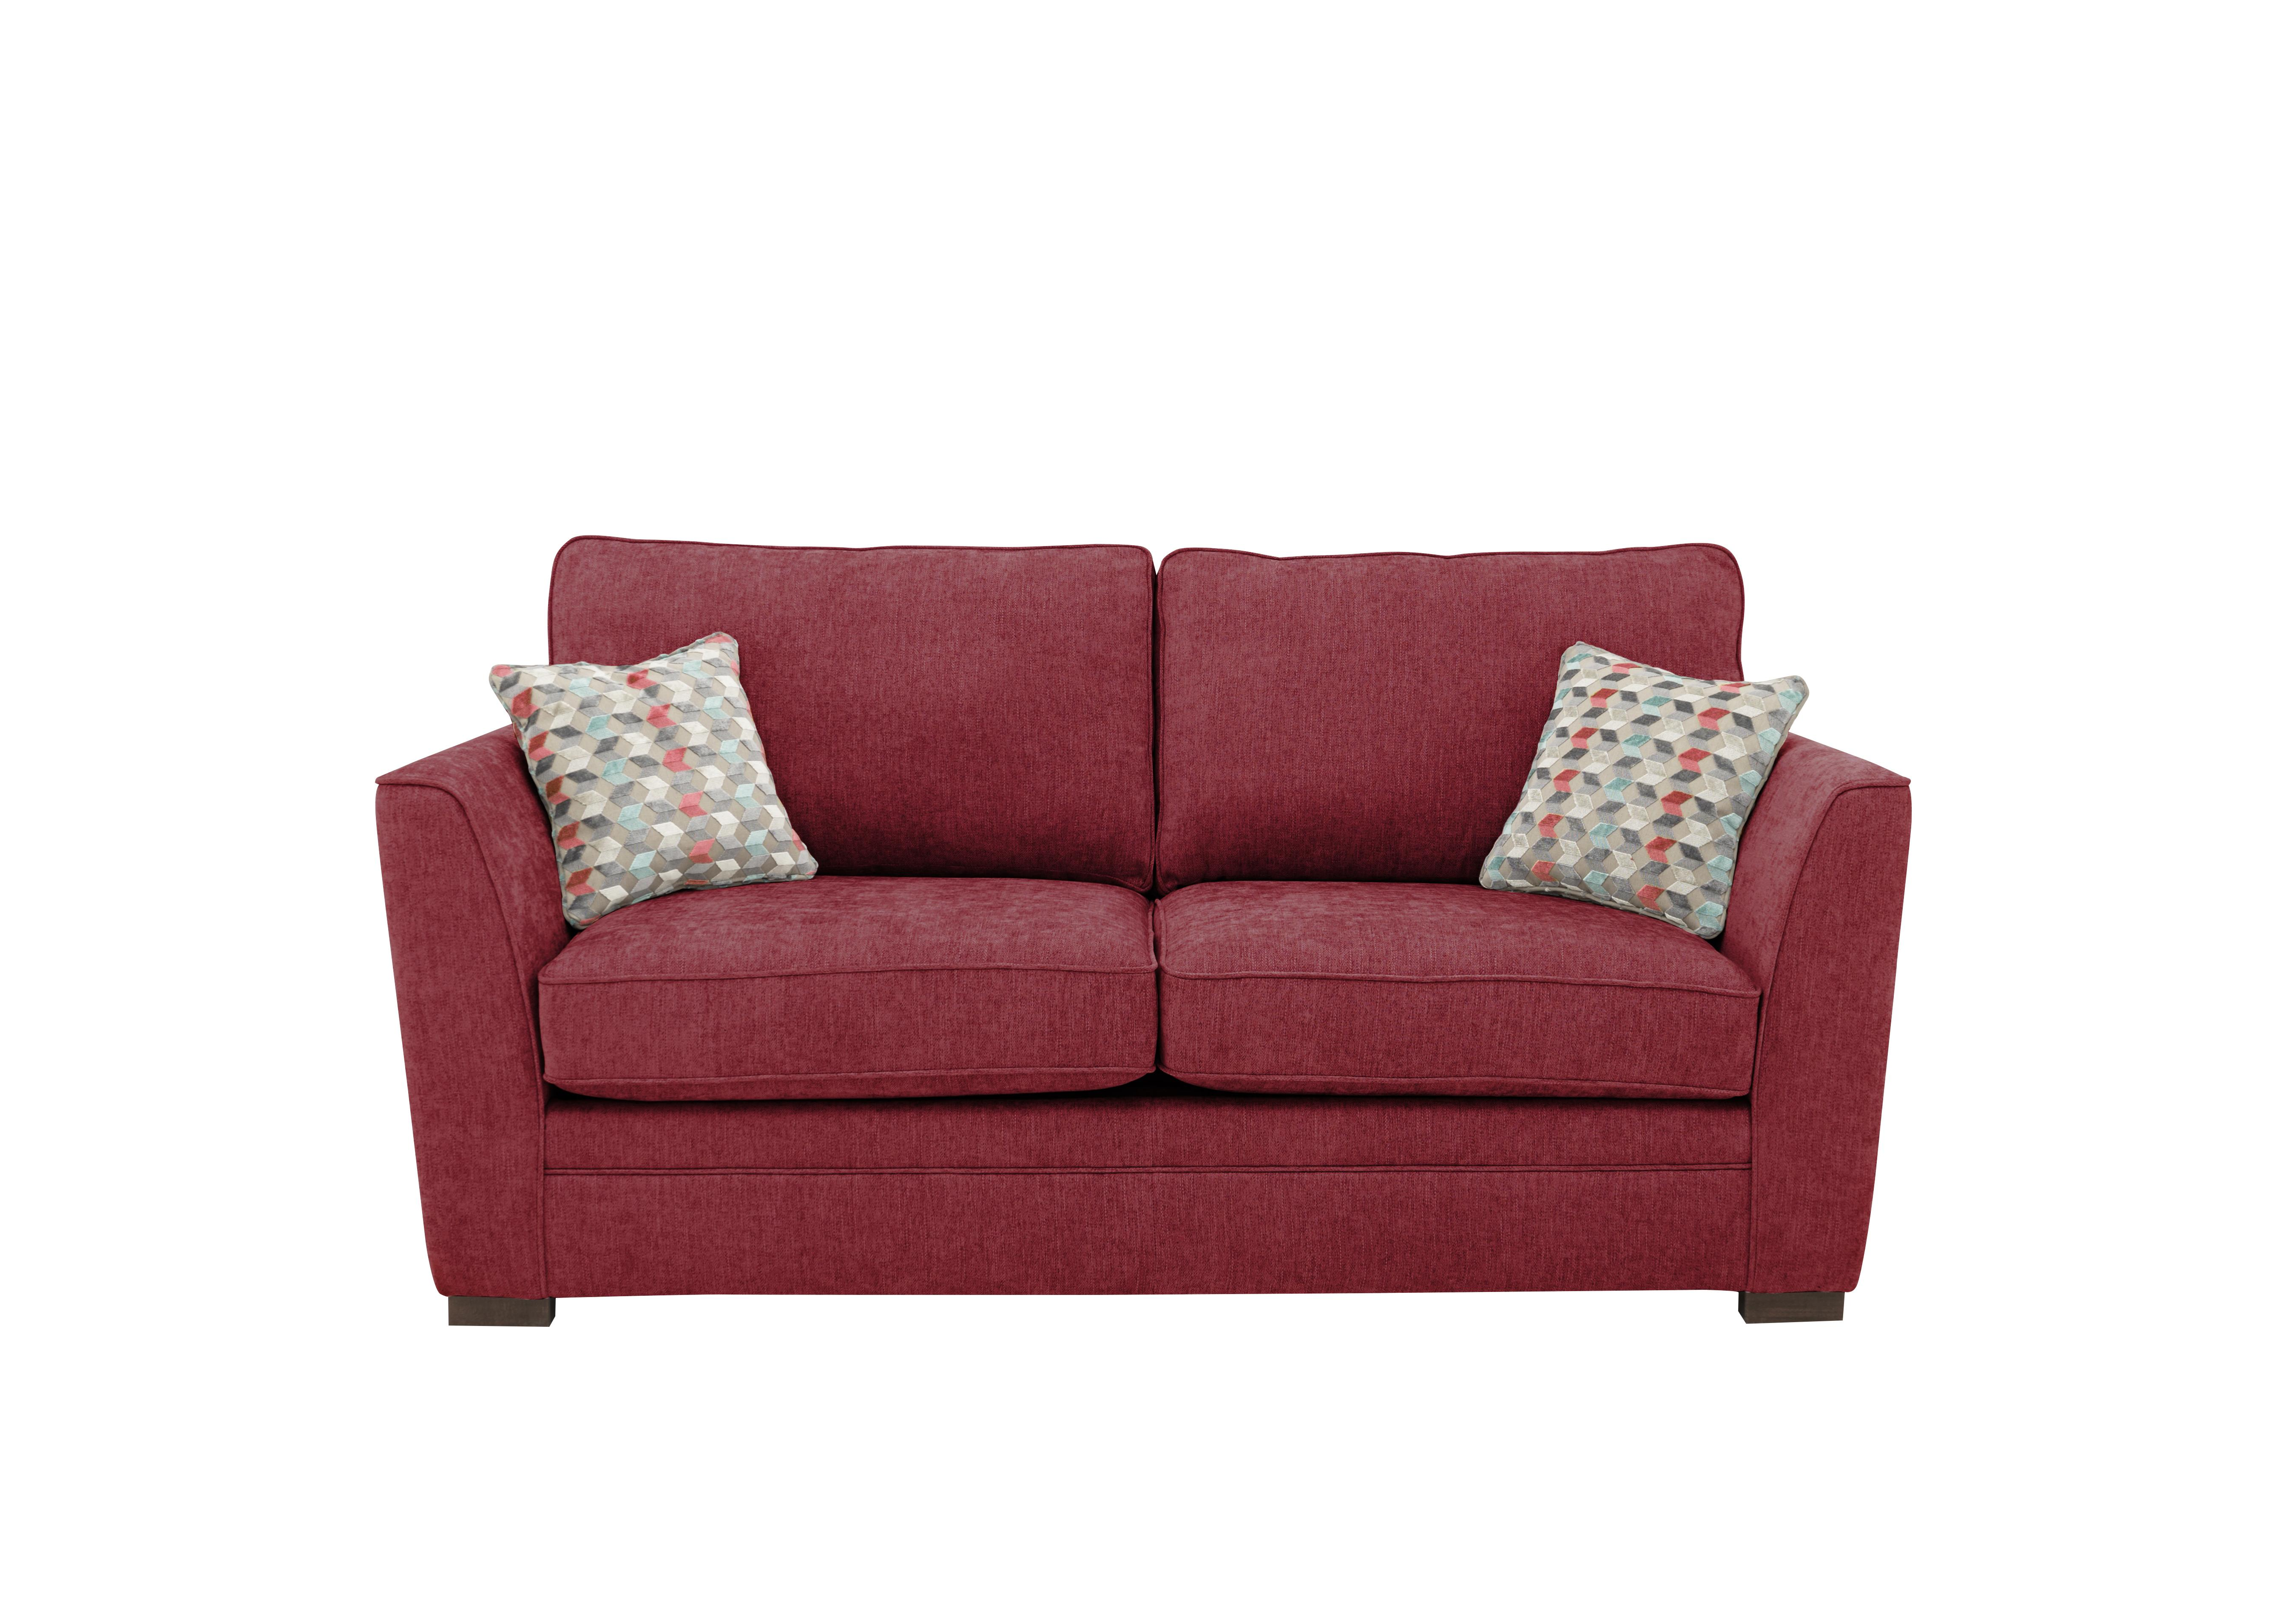 Red Fabric sofas - Furniture Village